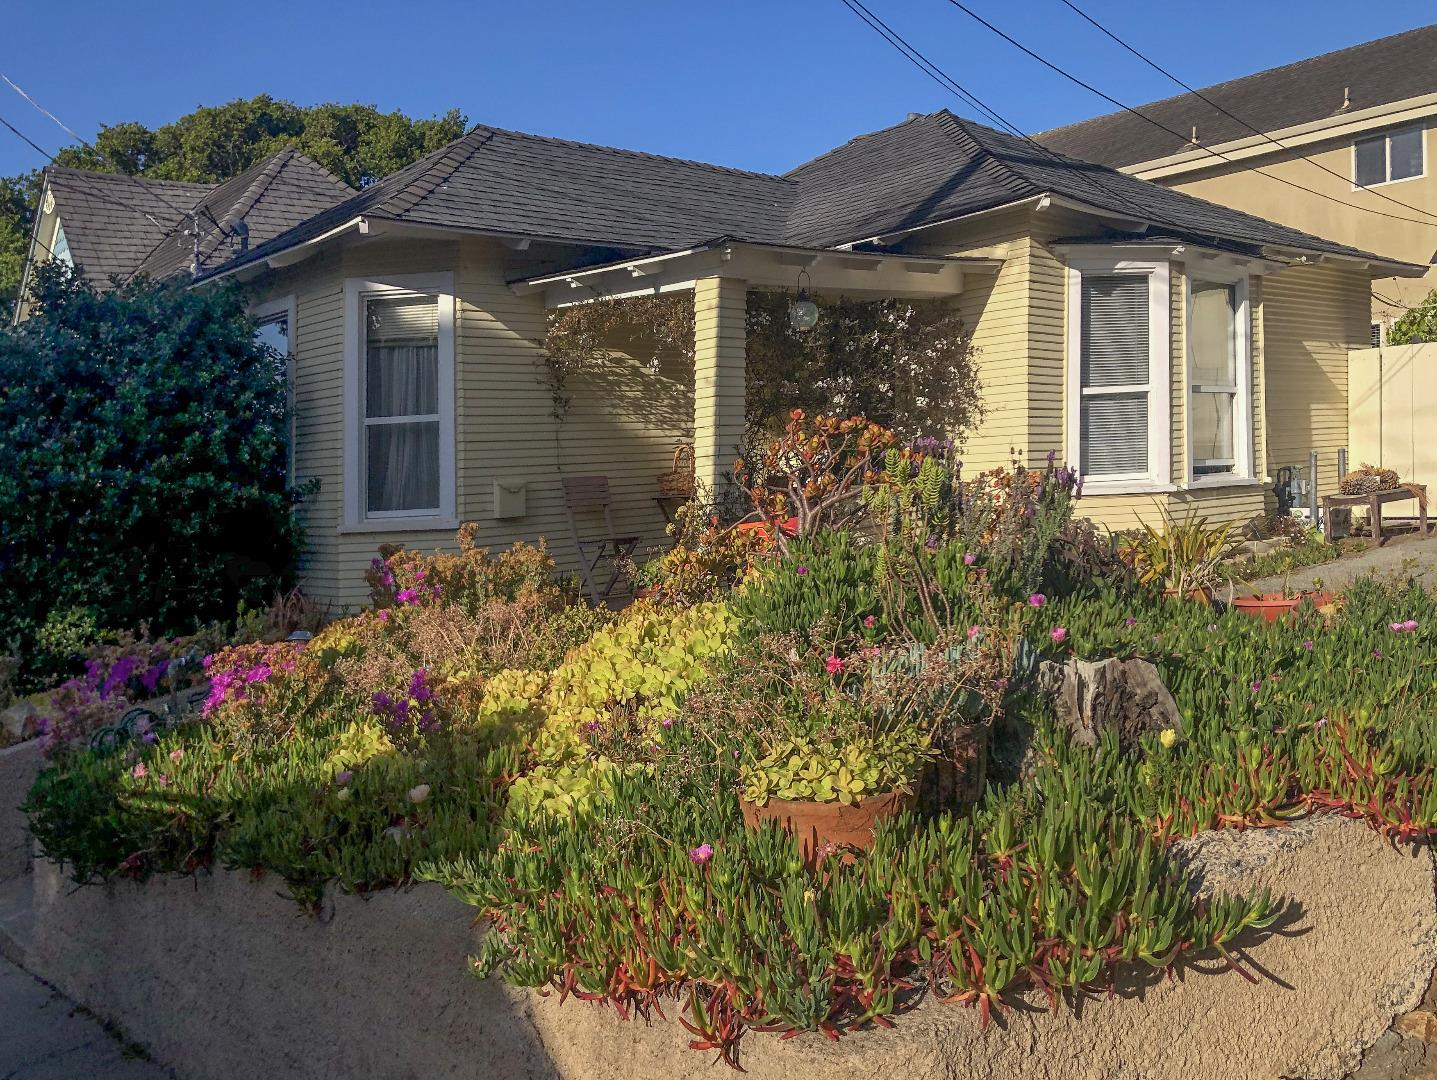 Property for sale at 313 & 315 11th ST, Pacific Grove,  California 93950